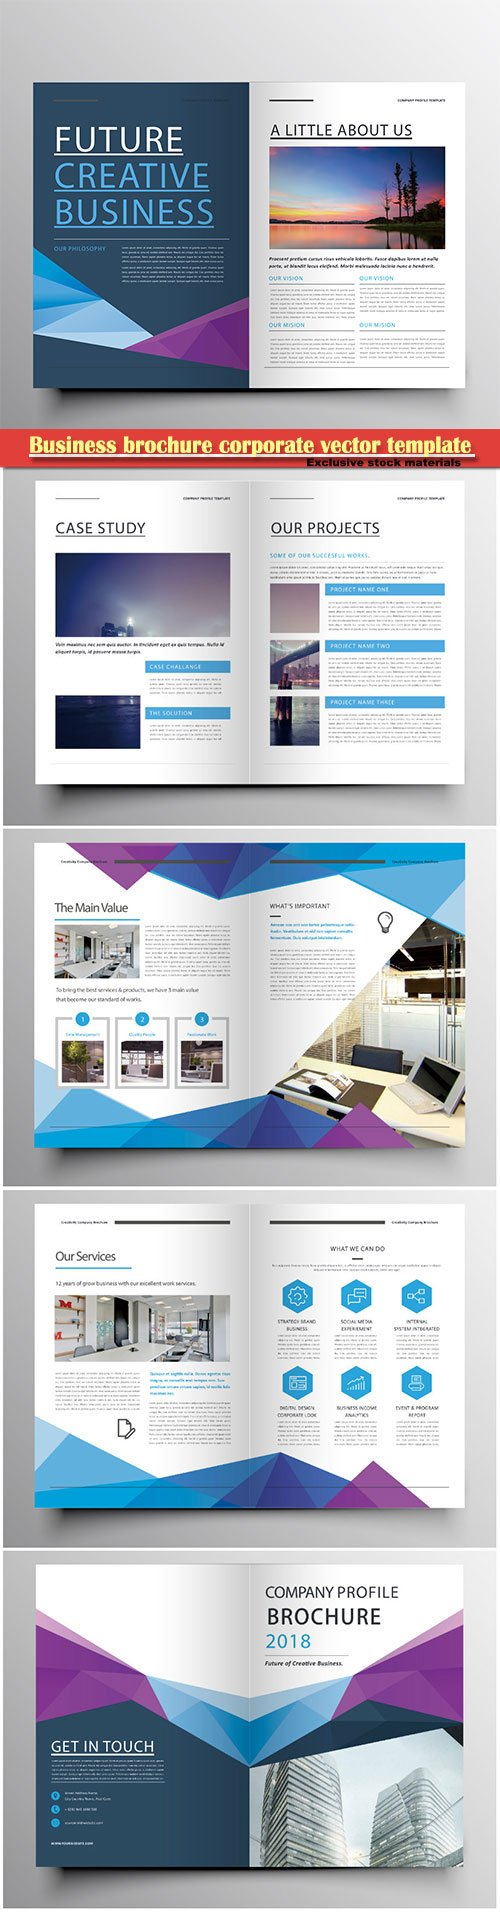 Business brochure corporate vector template, magazine flyer mockup # 46